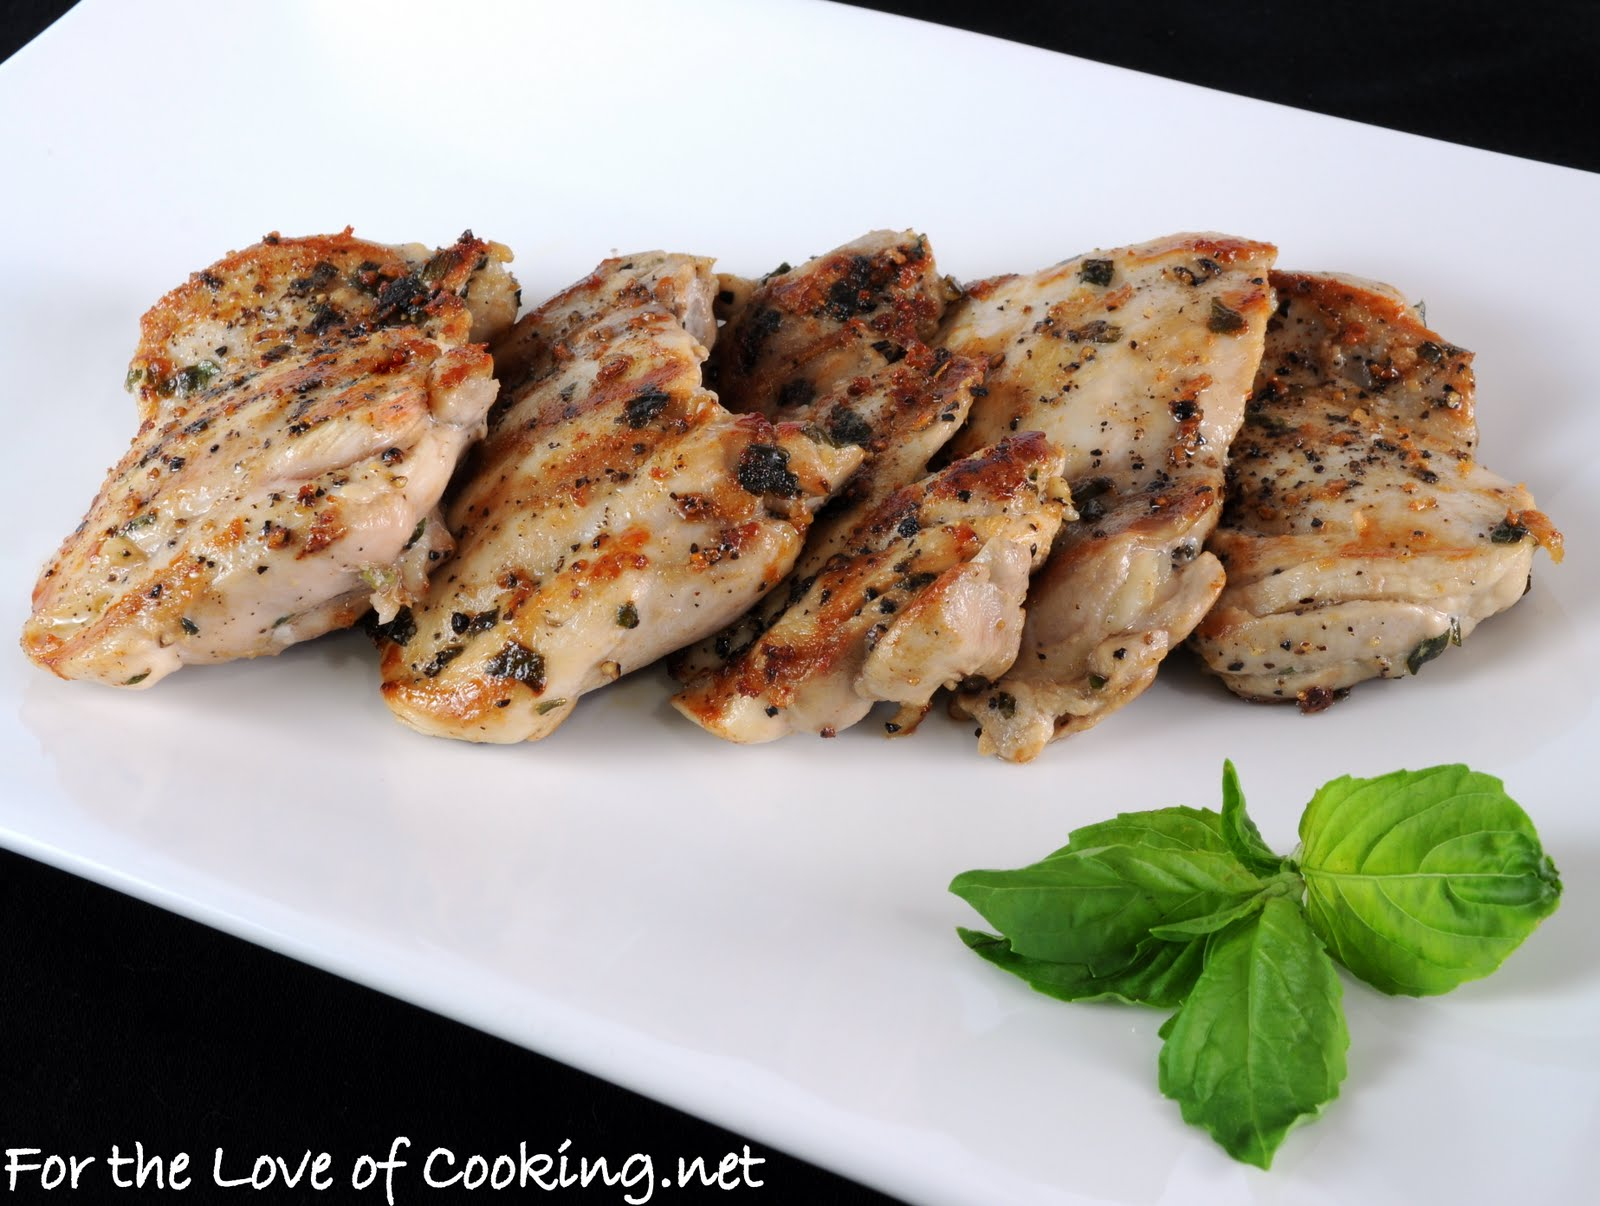 Basil Marinated Chicken Thighs | For the Love of Cooking